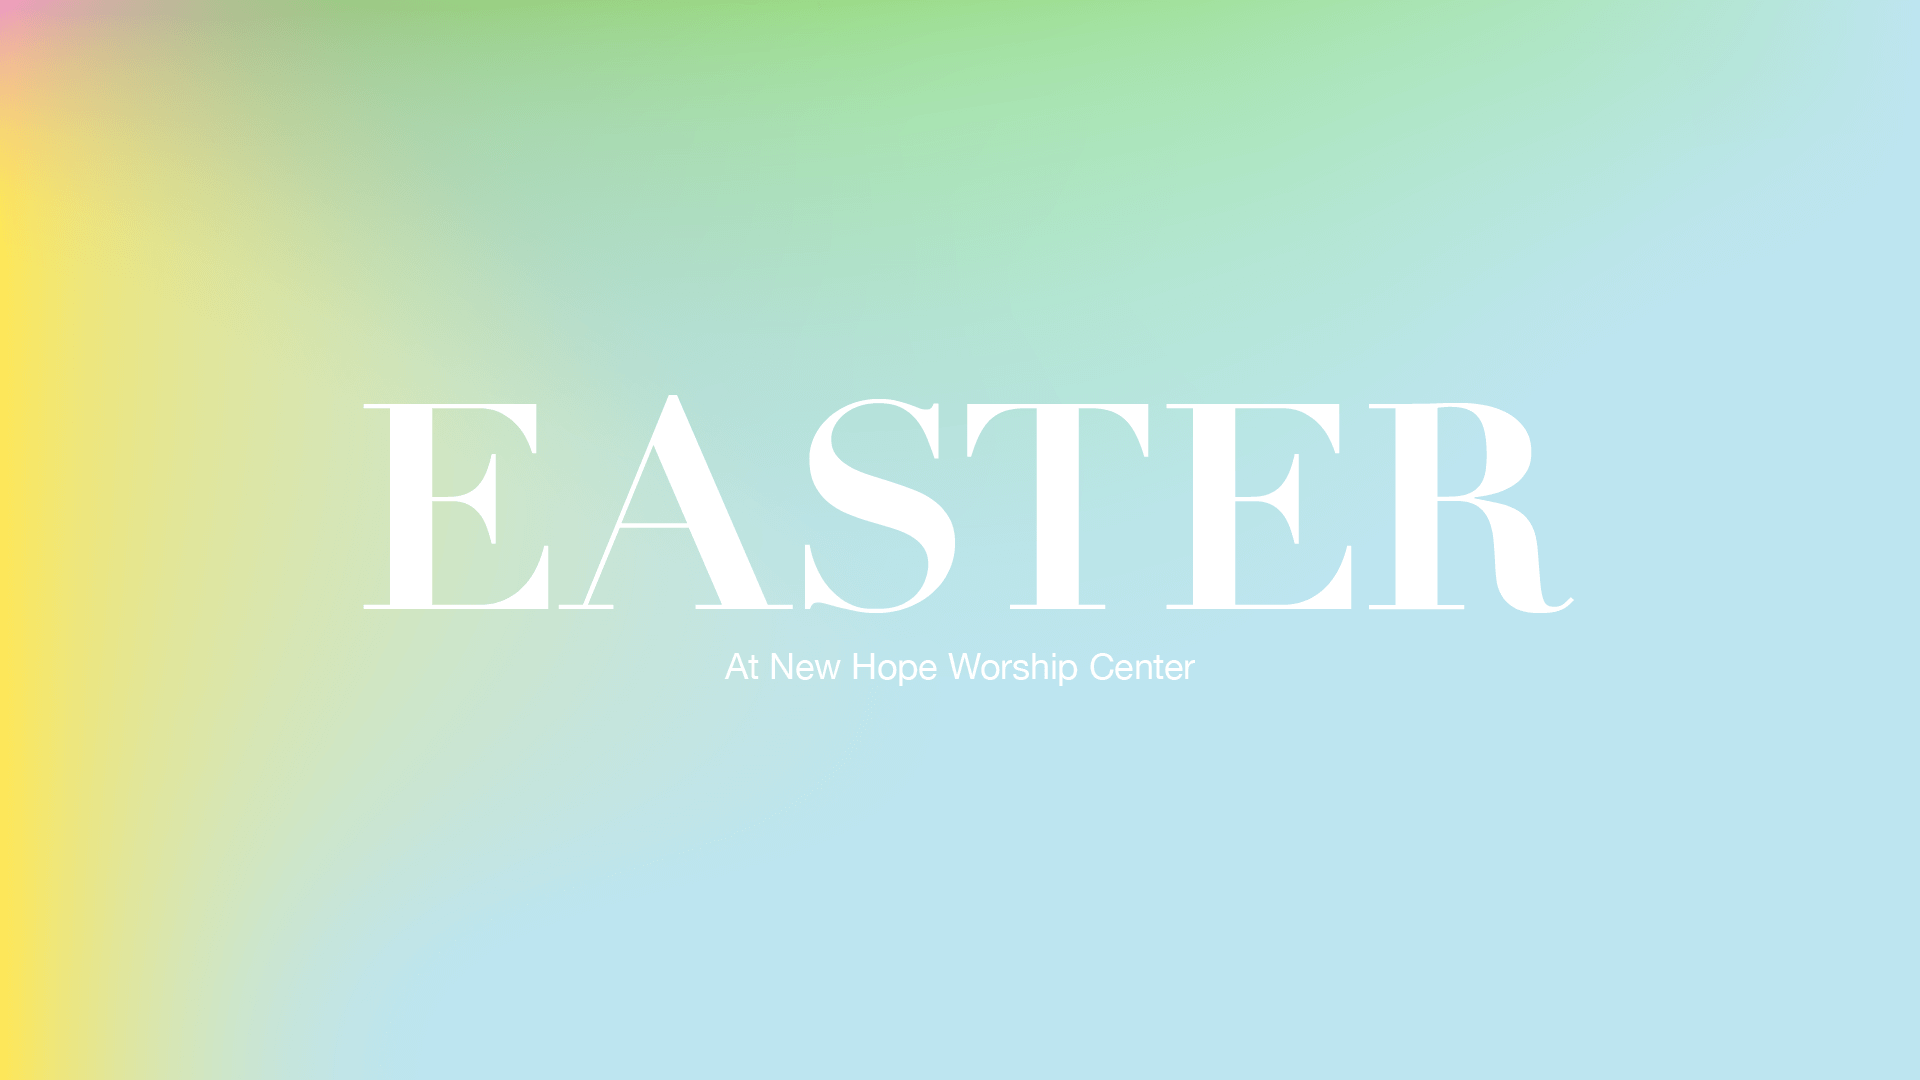 Easter at New Hope